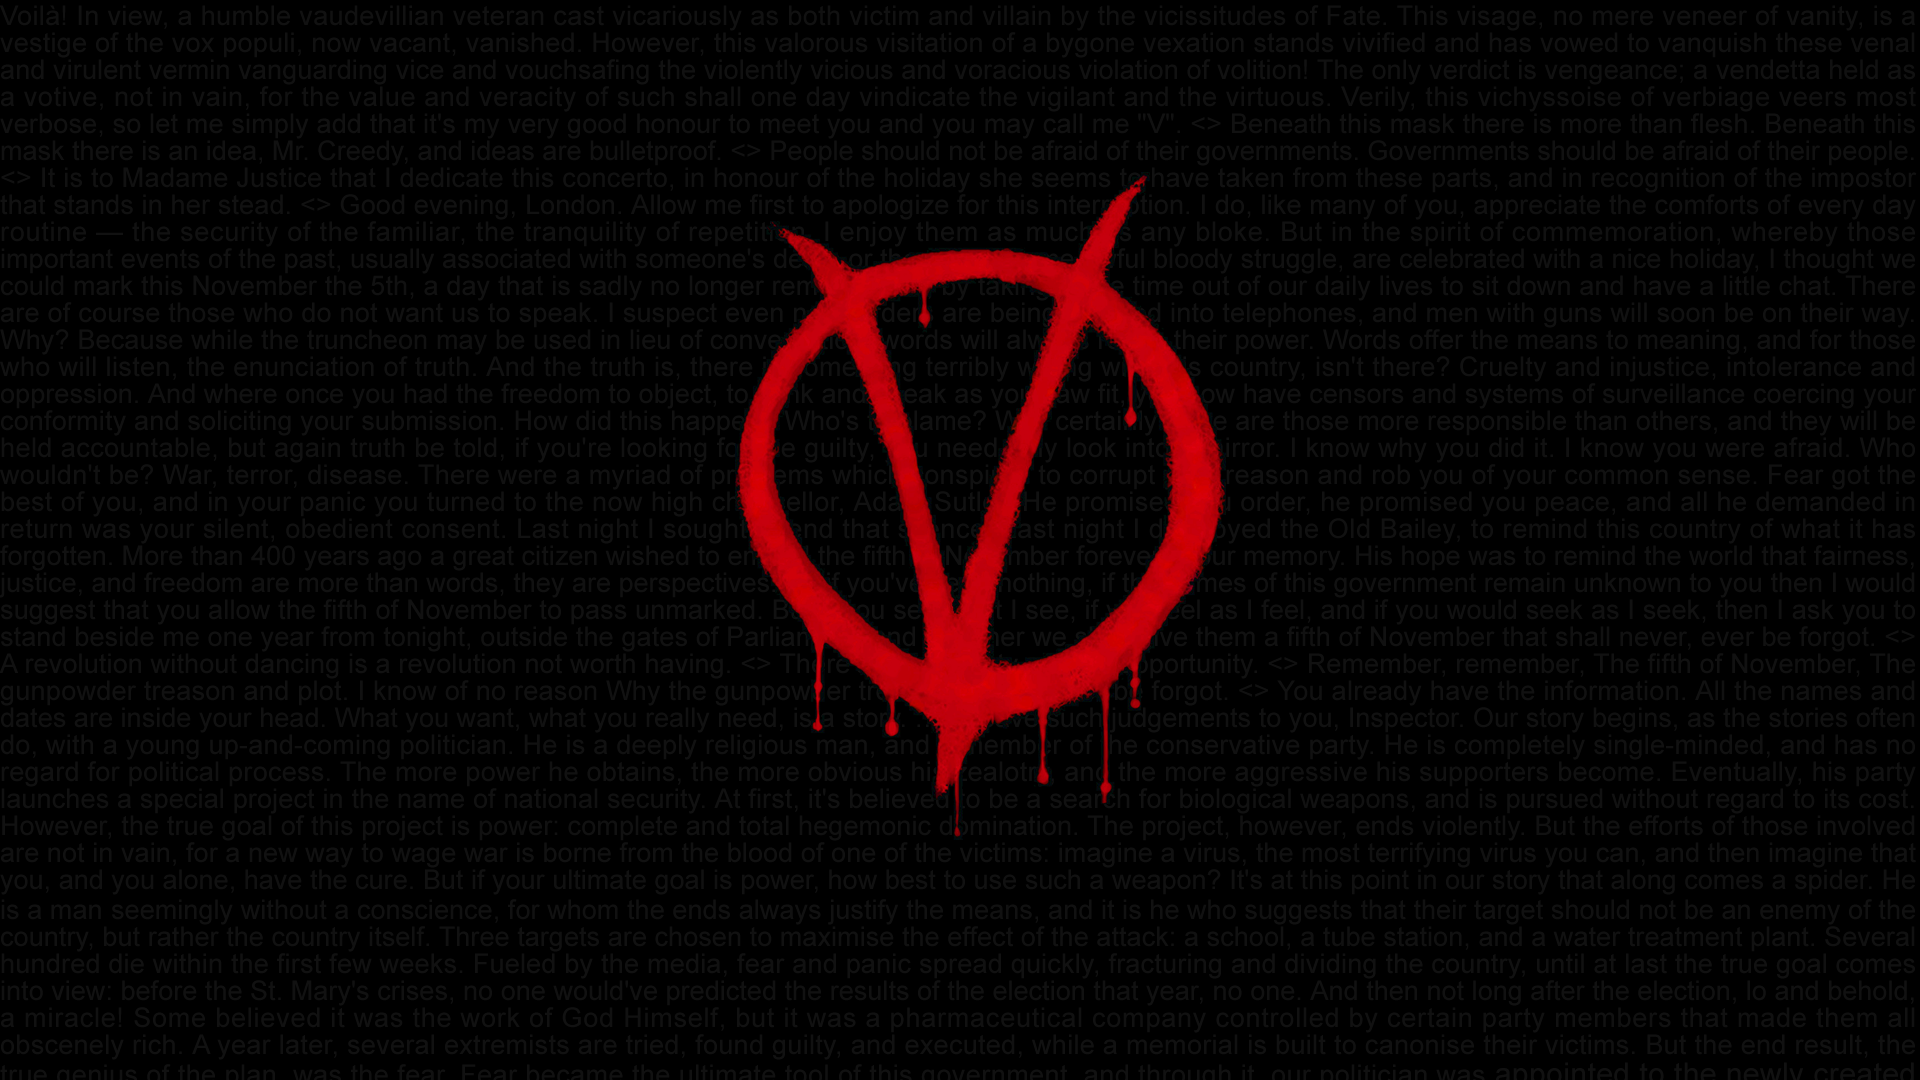 V for Vendetta Quotes HD Wallpaper 1920x1080 by Swagirr on 1920x1080